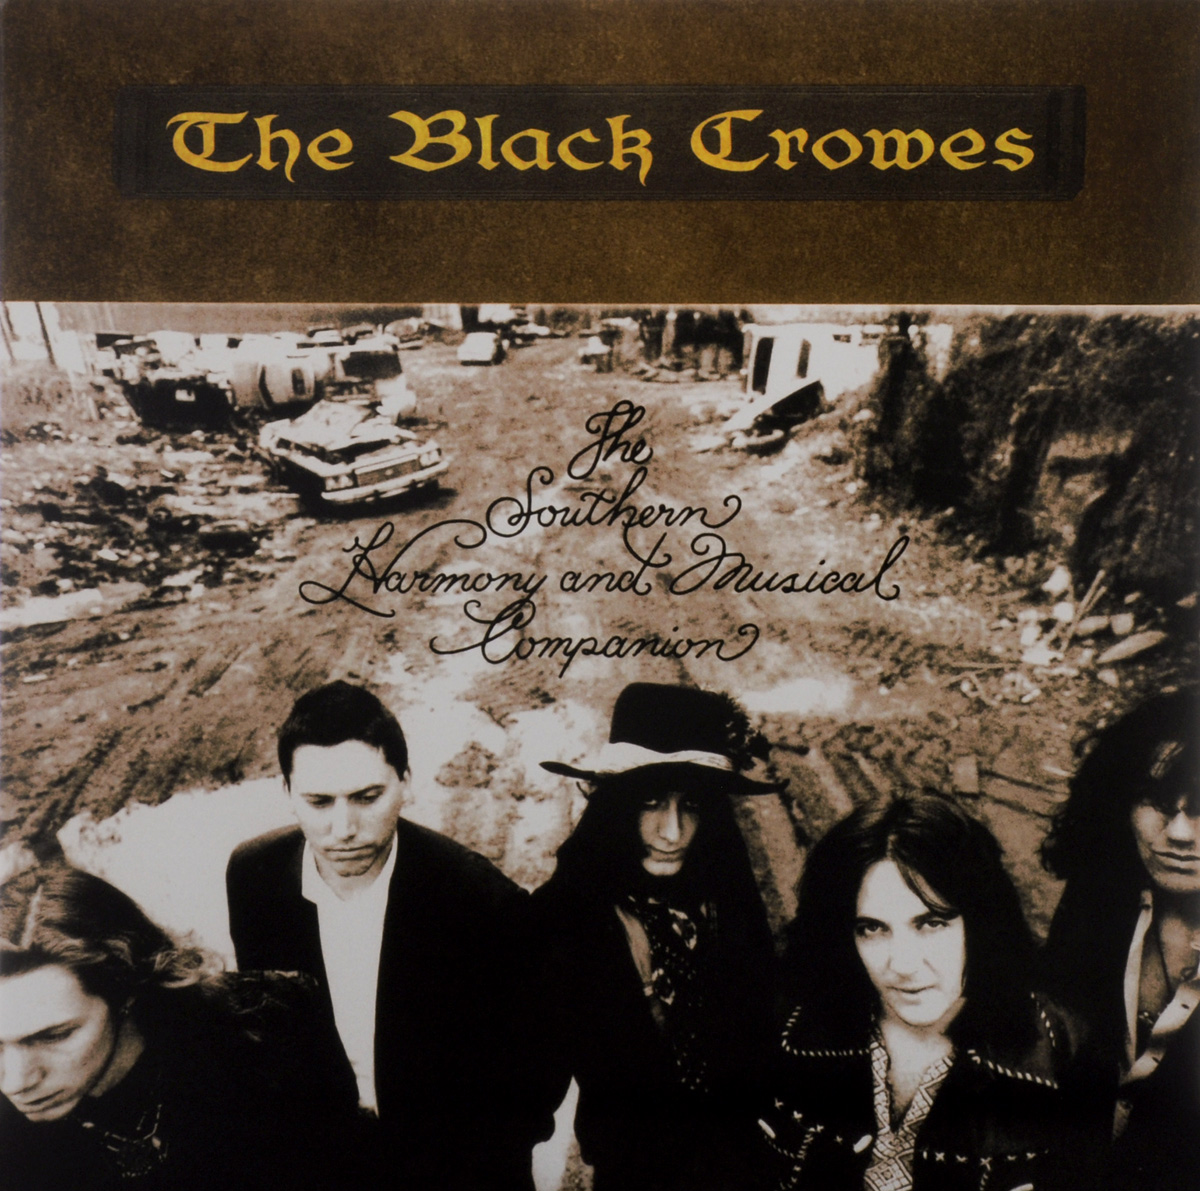 The Black Crowes The Black Crowes. The Southern Harmony And Musical Companion (2 LP) the black crowes the black crowesblack crowes three snakes and one charm 2 lp